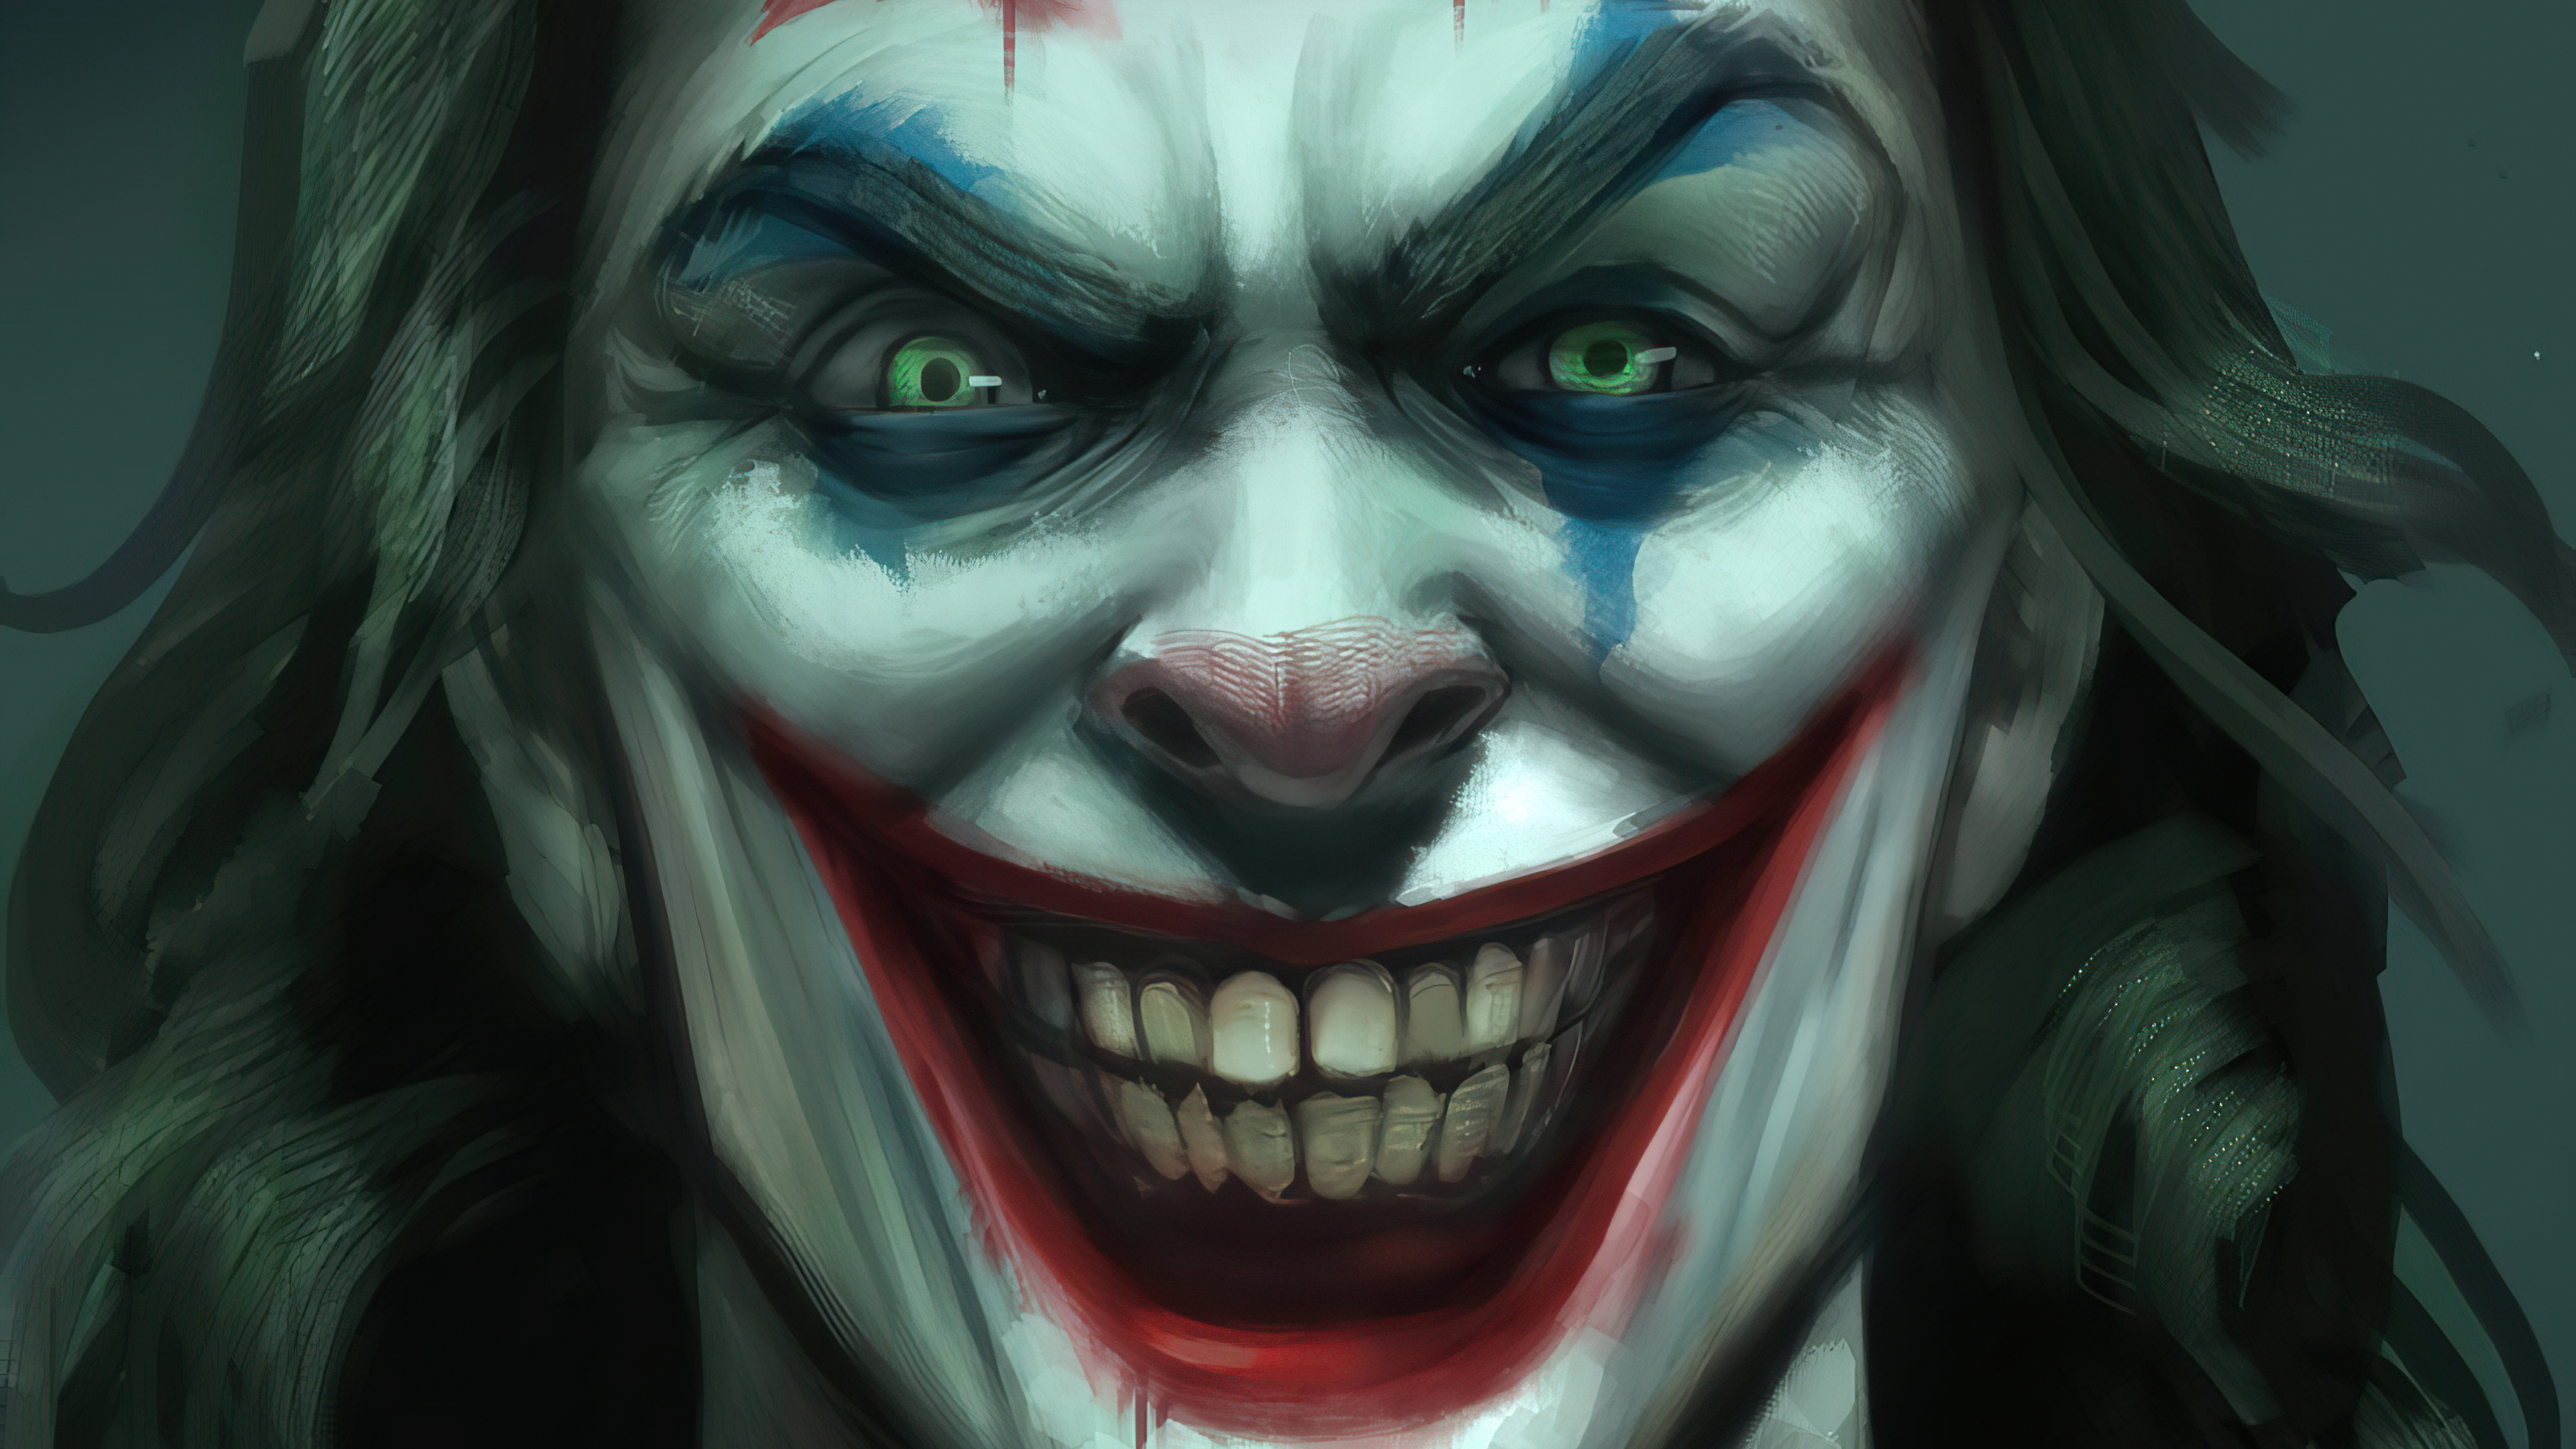 Joker Evil Smile 4k Hd Superheroes 4k Wallpapers Images Backgrounds Photos And Pictures Here you can find the best evil smile wallpapers uploaded by our community. joker evil smile 4k hd superheroes 4k